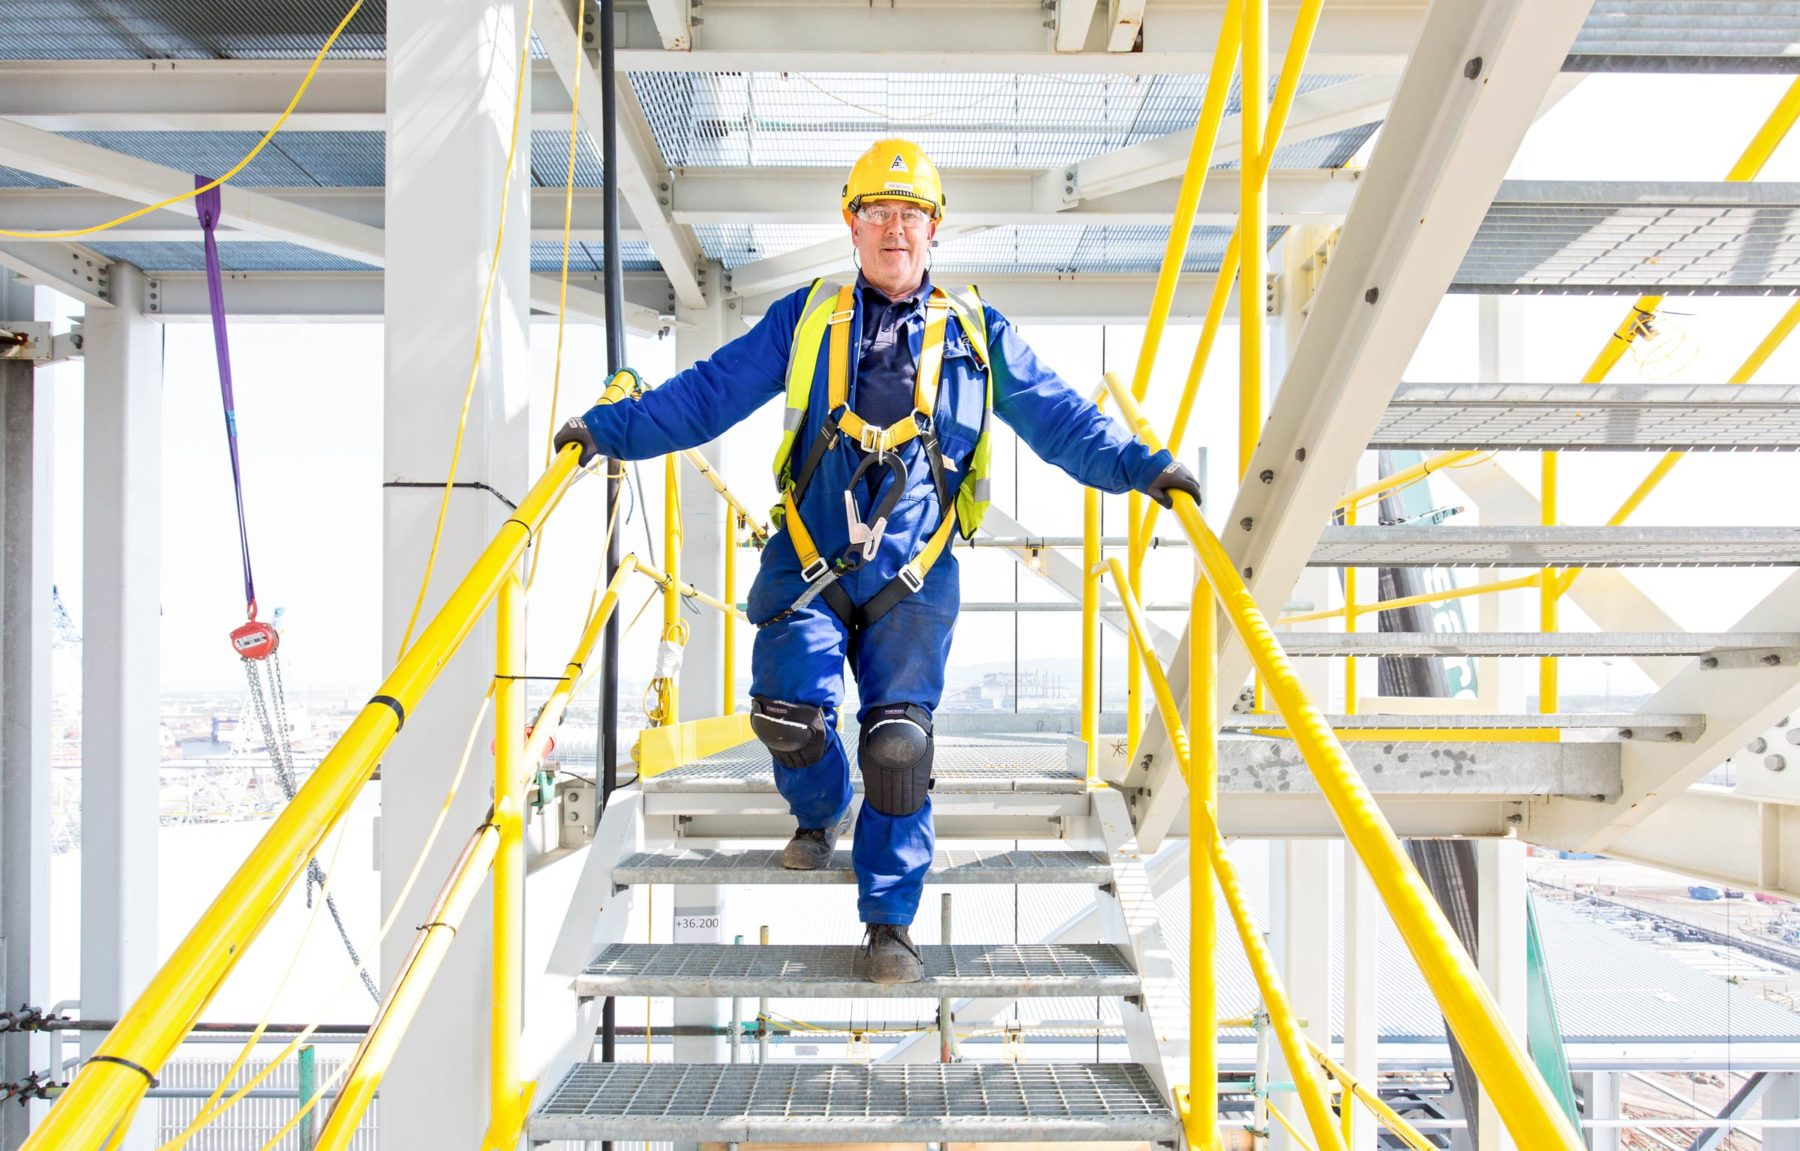 Construction worker in blue overalls wearing yellow hat and safety harness, standing on stairs with yellow rails